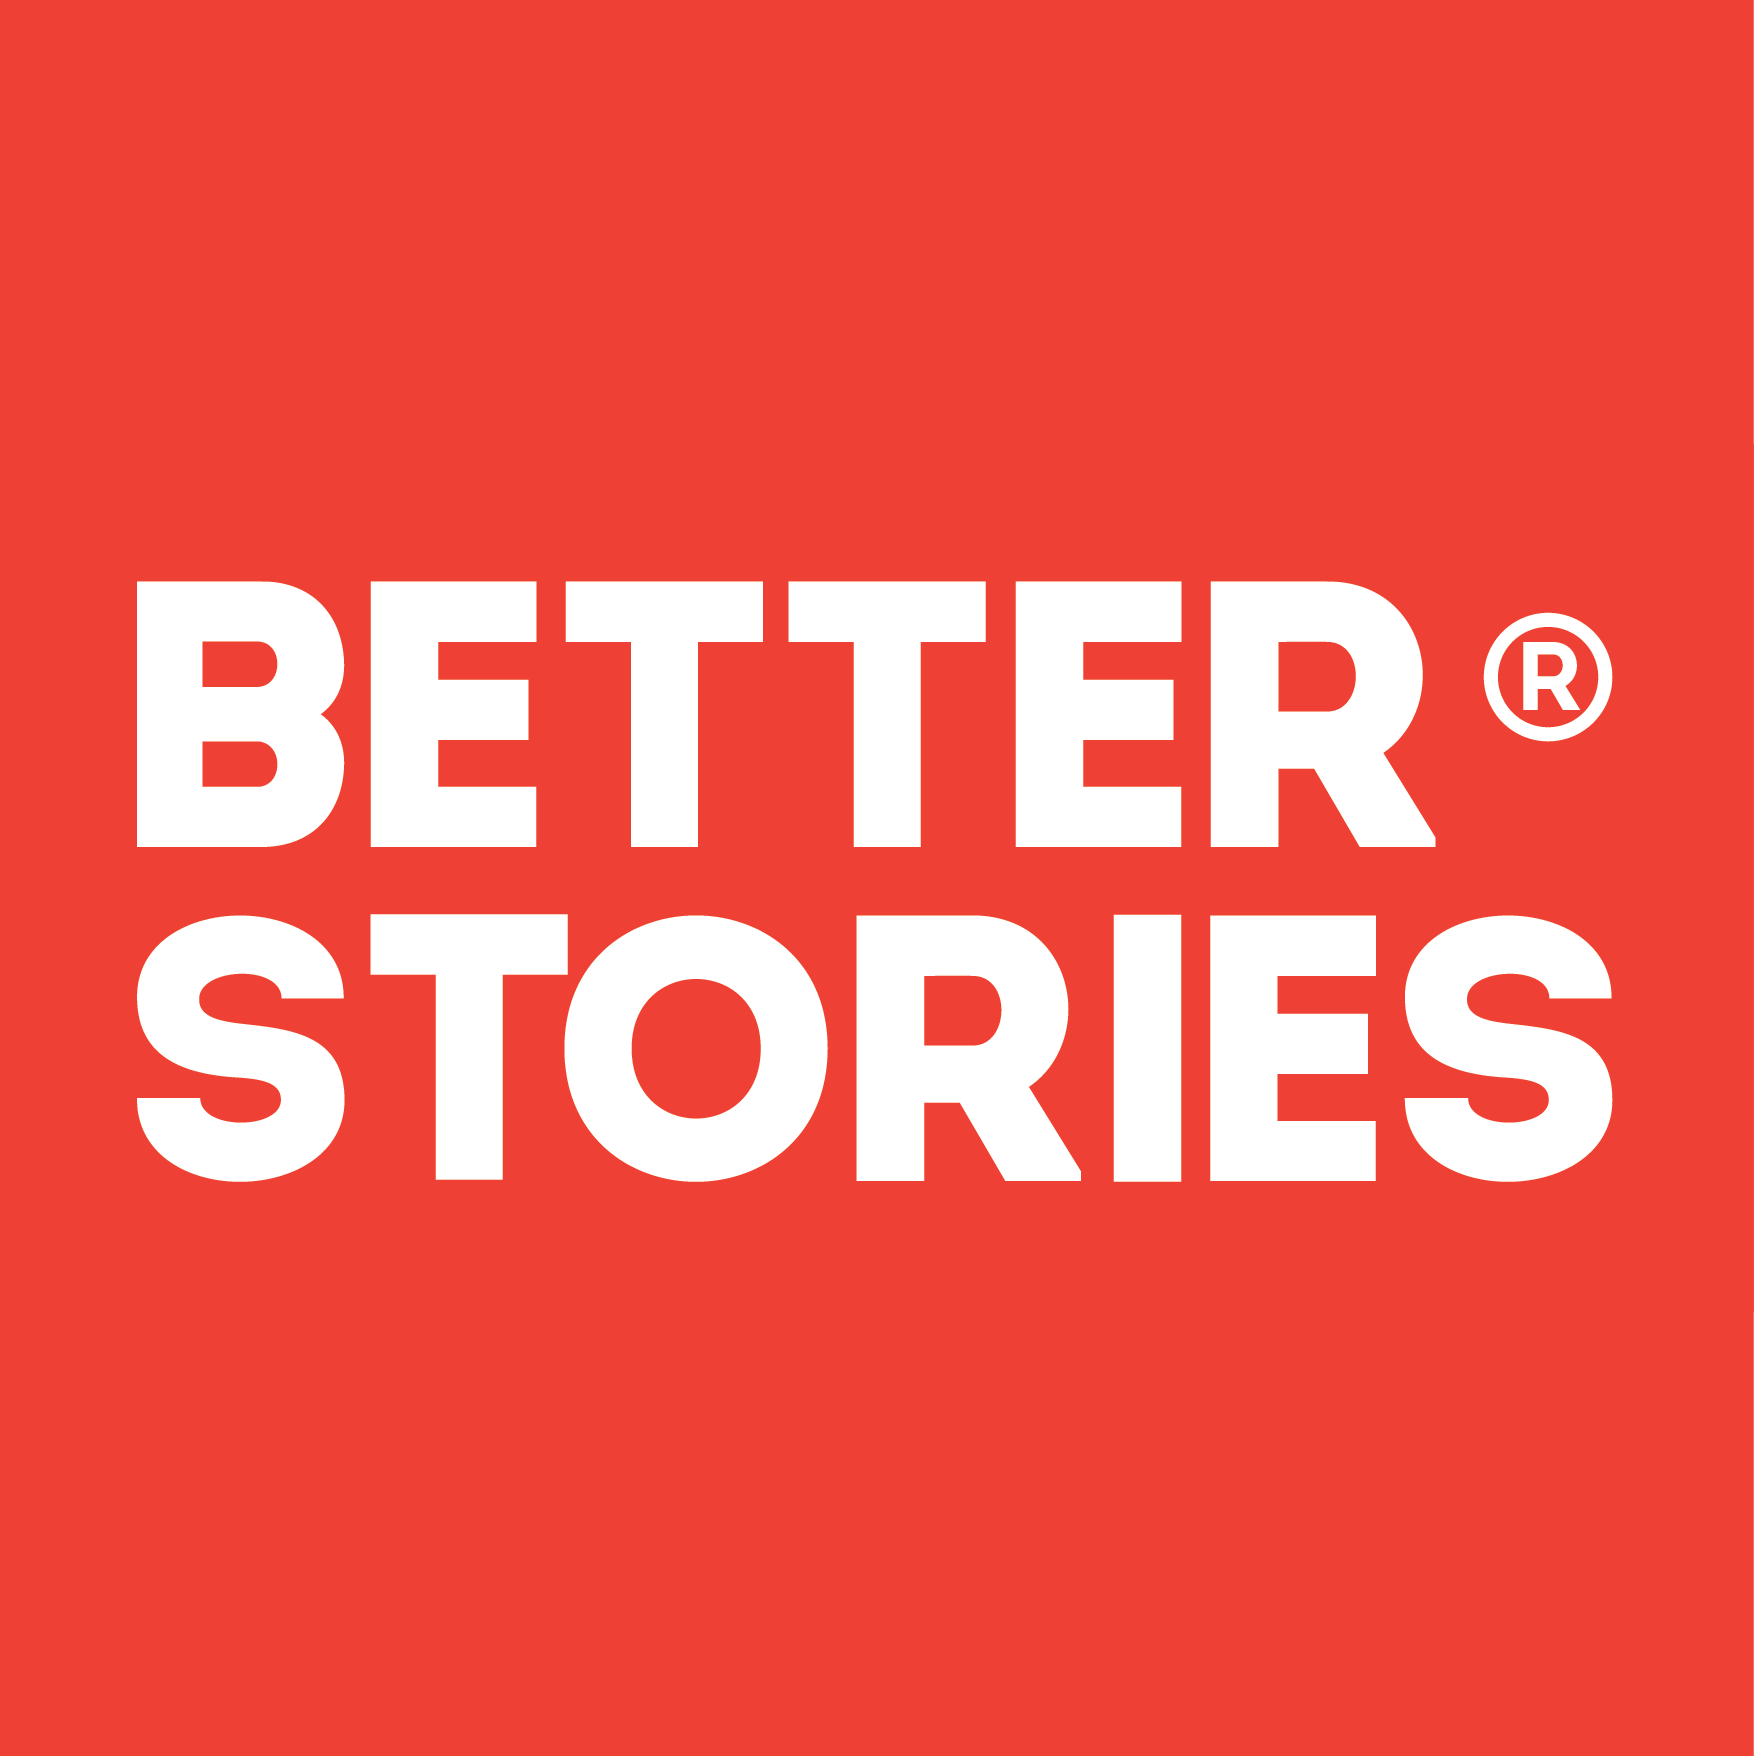 Better Stories logo (Bangladesh) (2)